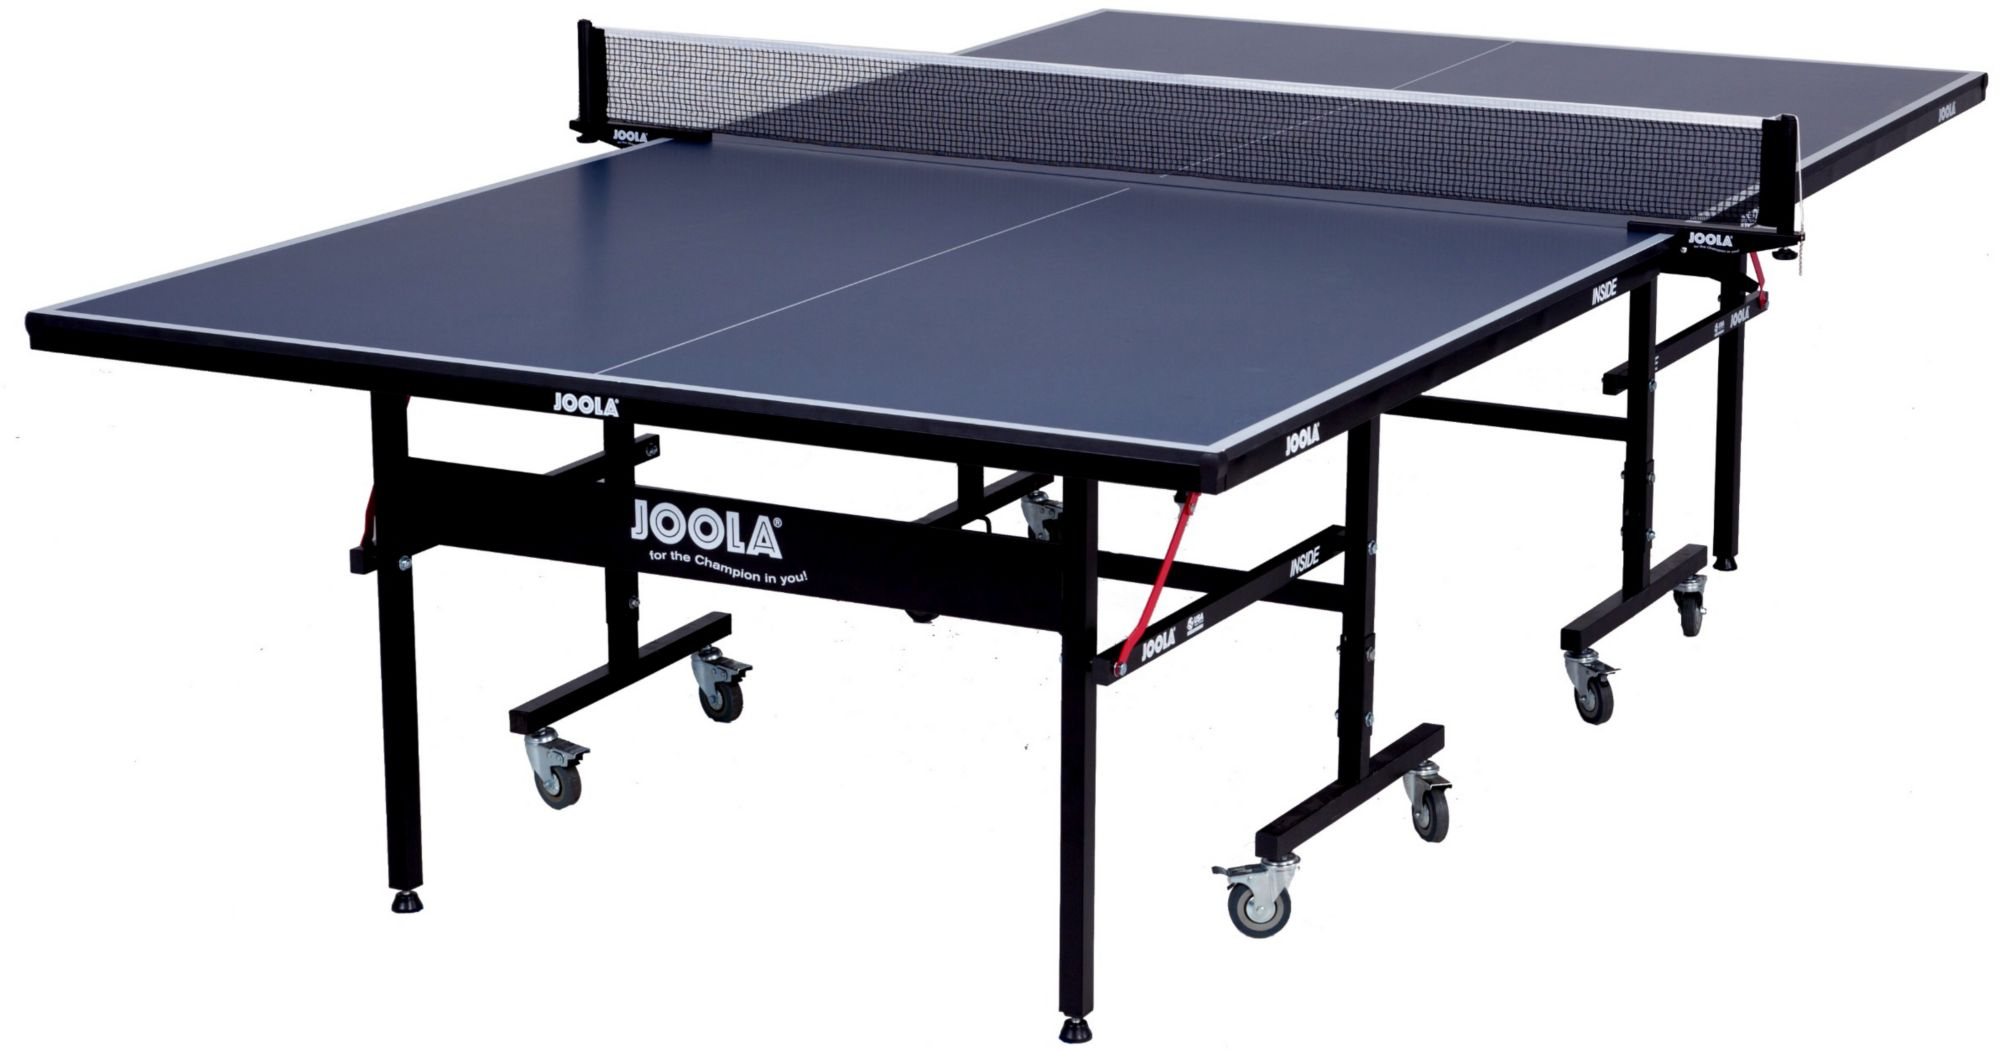 JOOLA Inside 15 Table Tennis Table with Net Set (15mm Thick) | DICKu0027S Sporting Goods  sc 1 st  DICKu0027S Sporting Goods & JOOLA Inside 15 Table Tennis Table with Net Set (15mm Thick ...